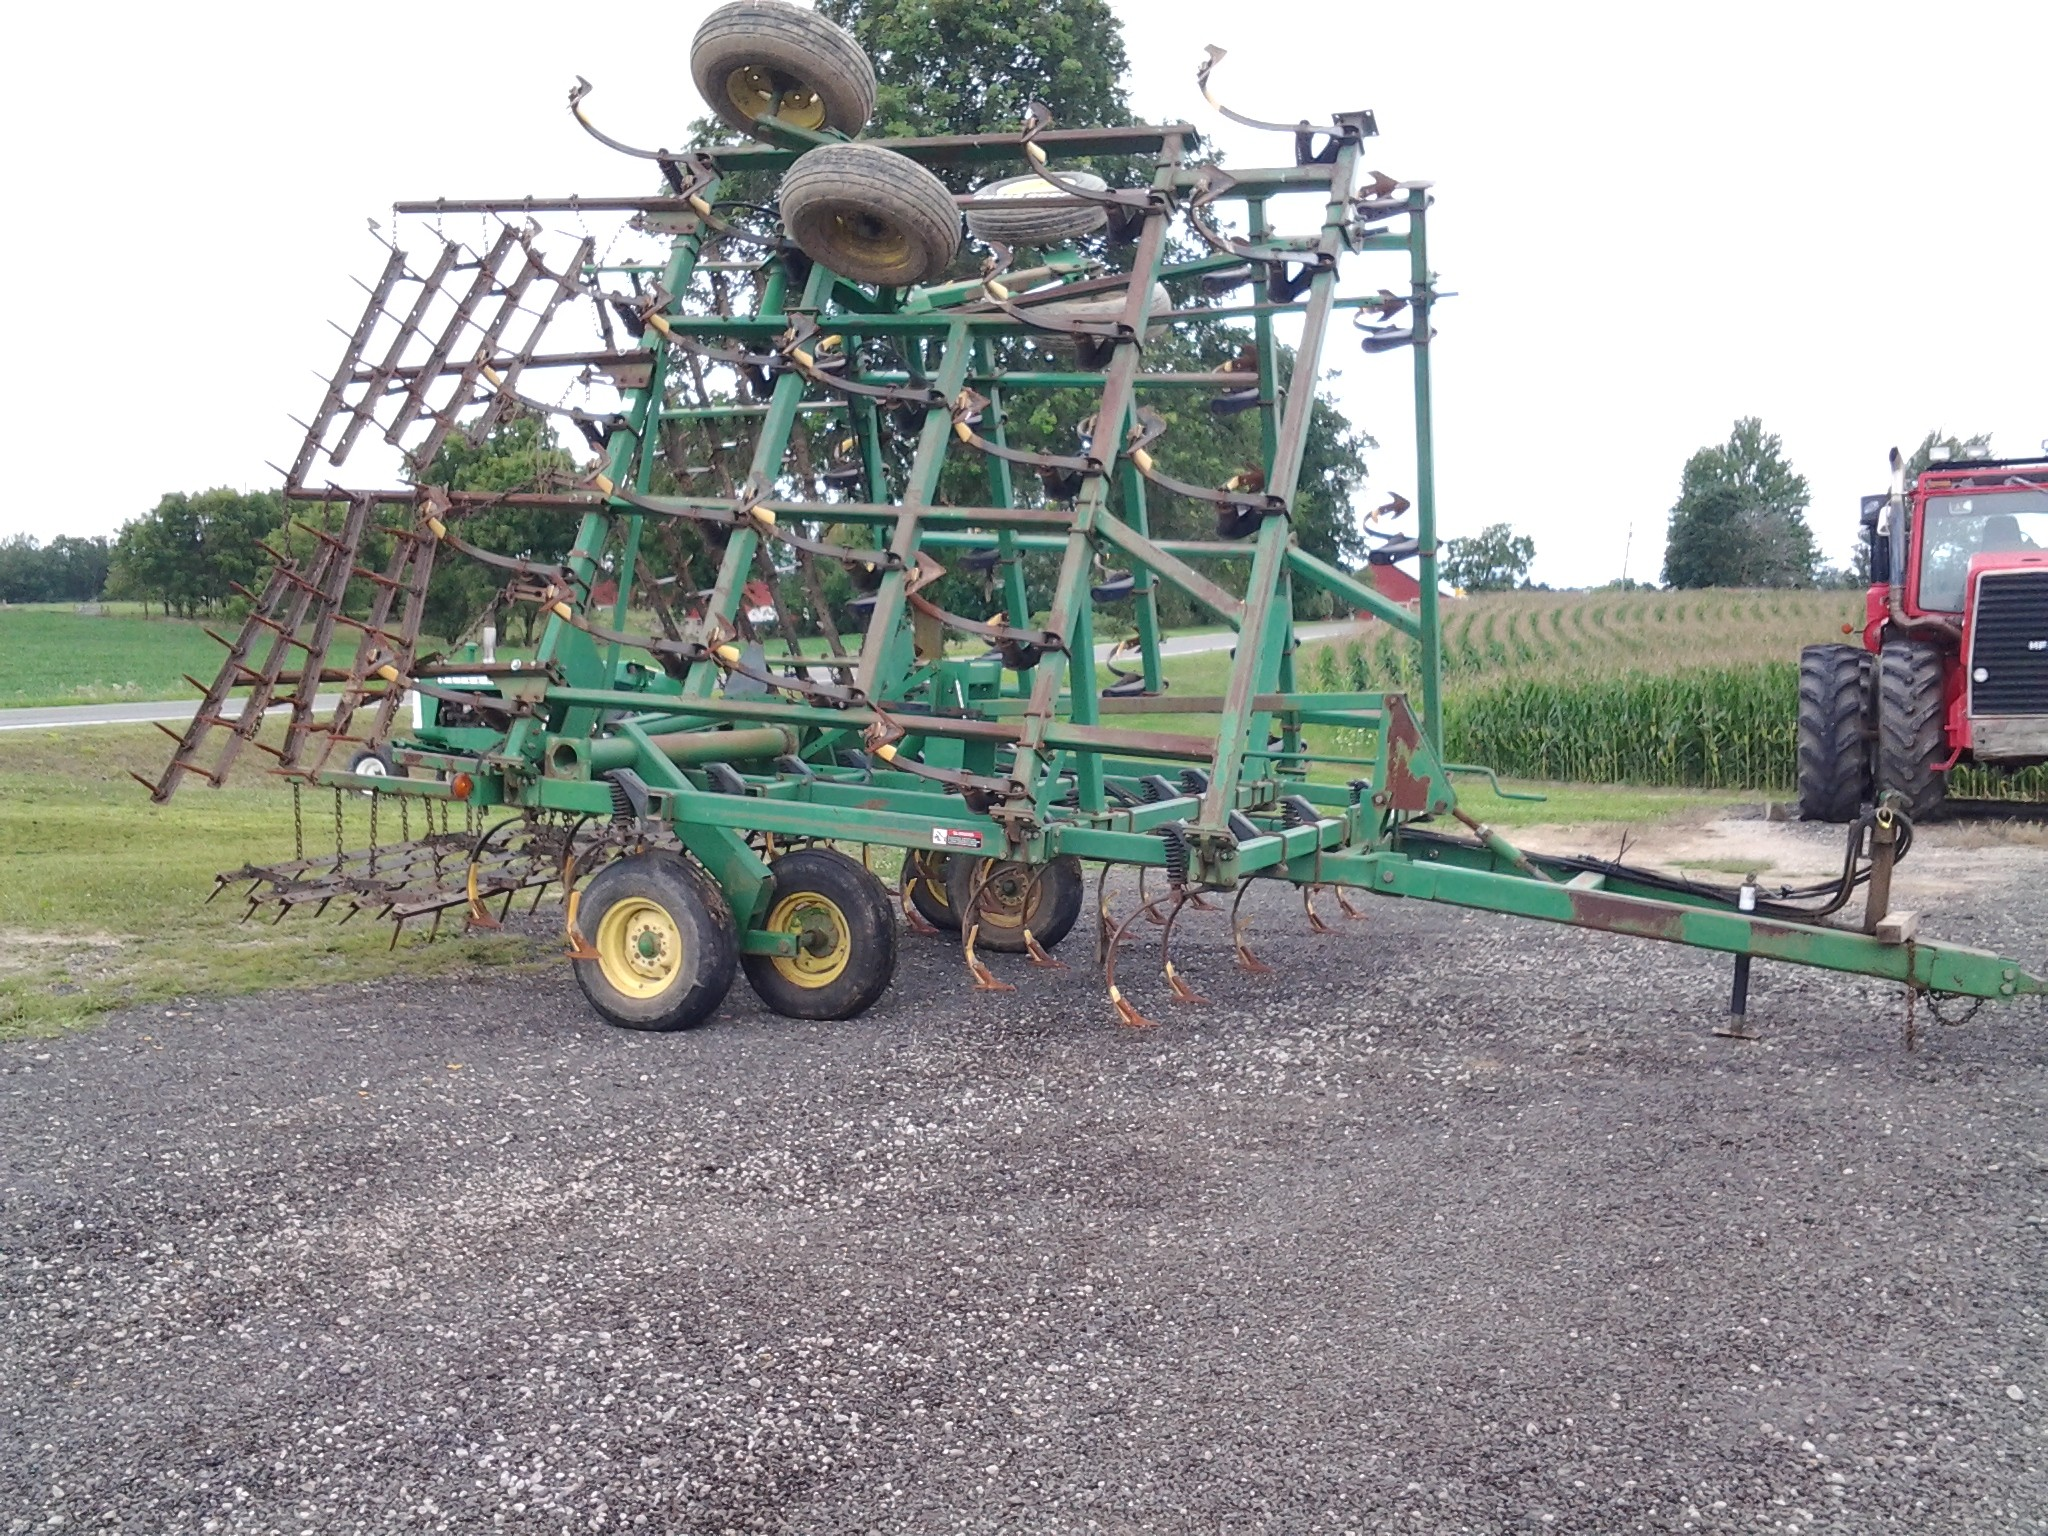 Used, 0, John Deere, Field Cultivator 980, Agricultural Equipment